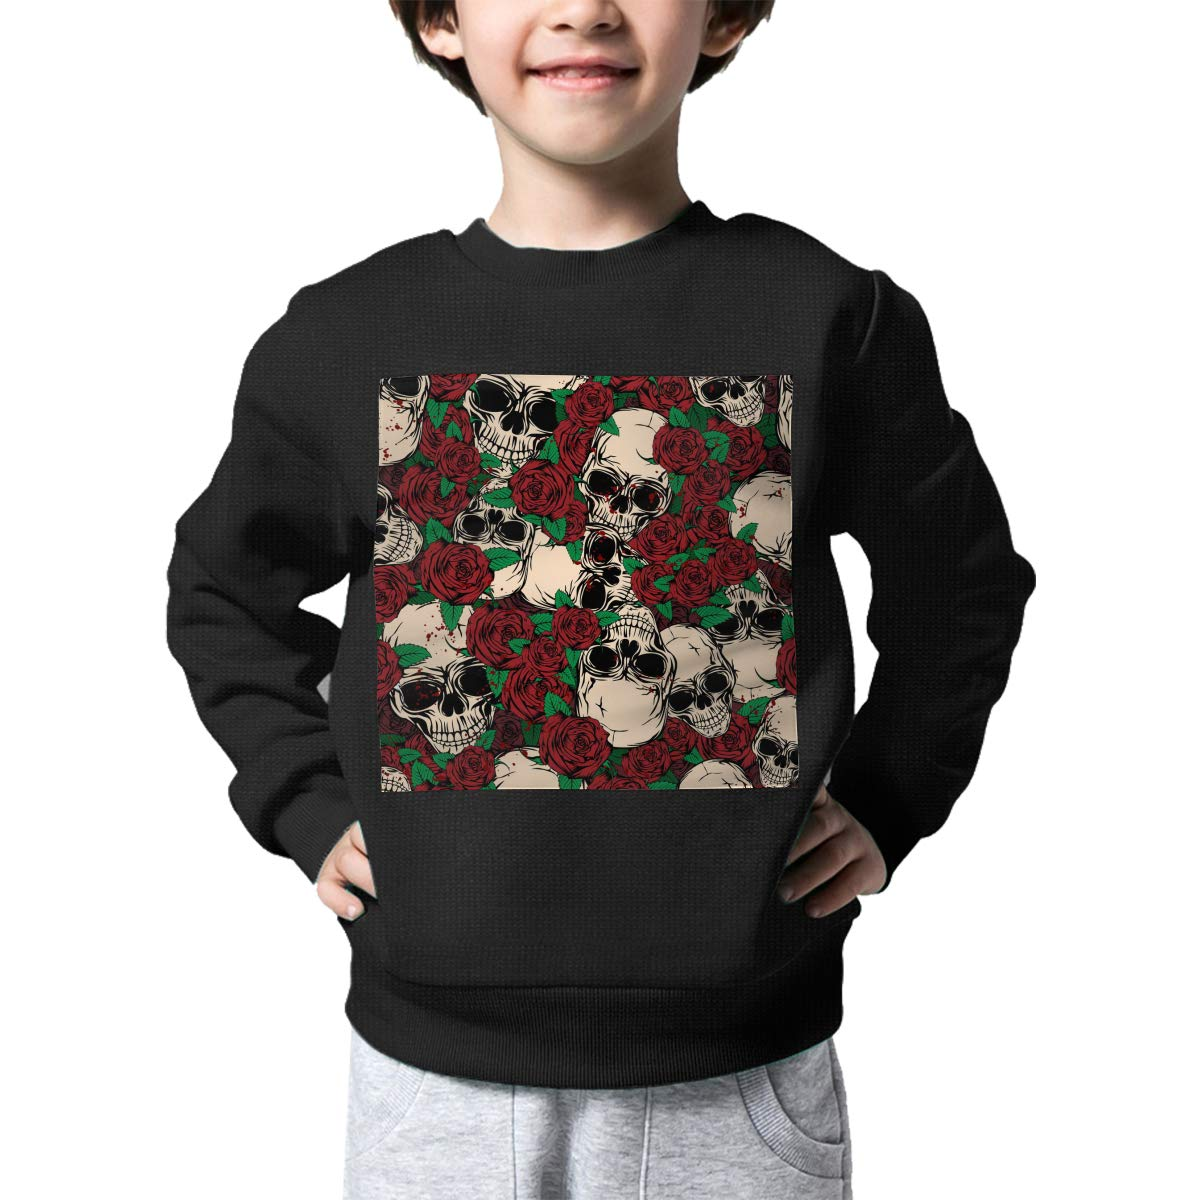 NJKM5MJ Boys Girls Skulls and Roses Pattern Lovely Sweaters Soft Warm Childrens Sweater